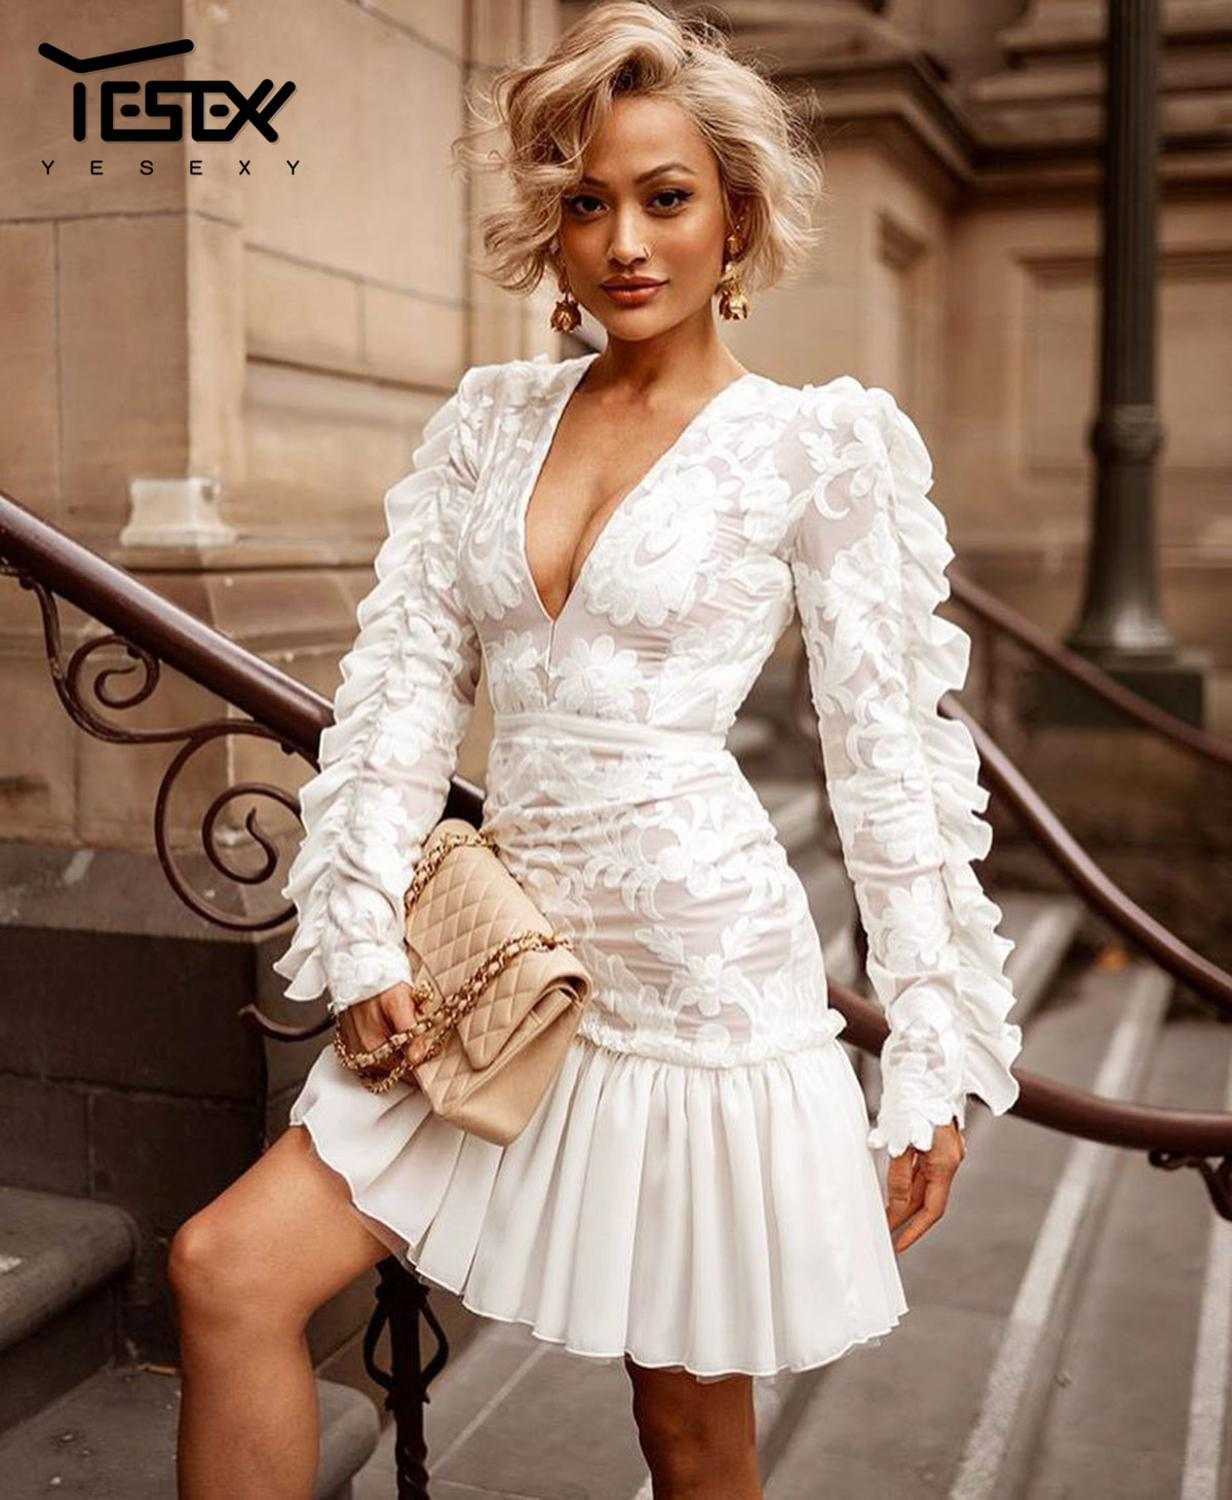 Yesexy 2020 Autumn Deep <font><b>V</b></font> <font><b>Neck</b></font> <font><b>Sexy</b></font> Women <font><b>Dress</b></font> Ruffles Flower Embroidery Long Sleeve <font><b>Elegant</b></font> Women Mini <font><b>Dresses</b></font> VR1175 image